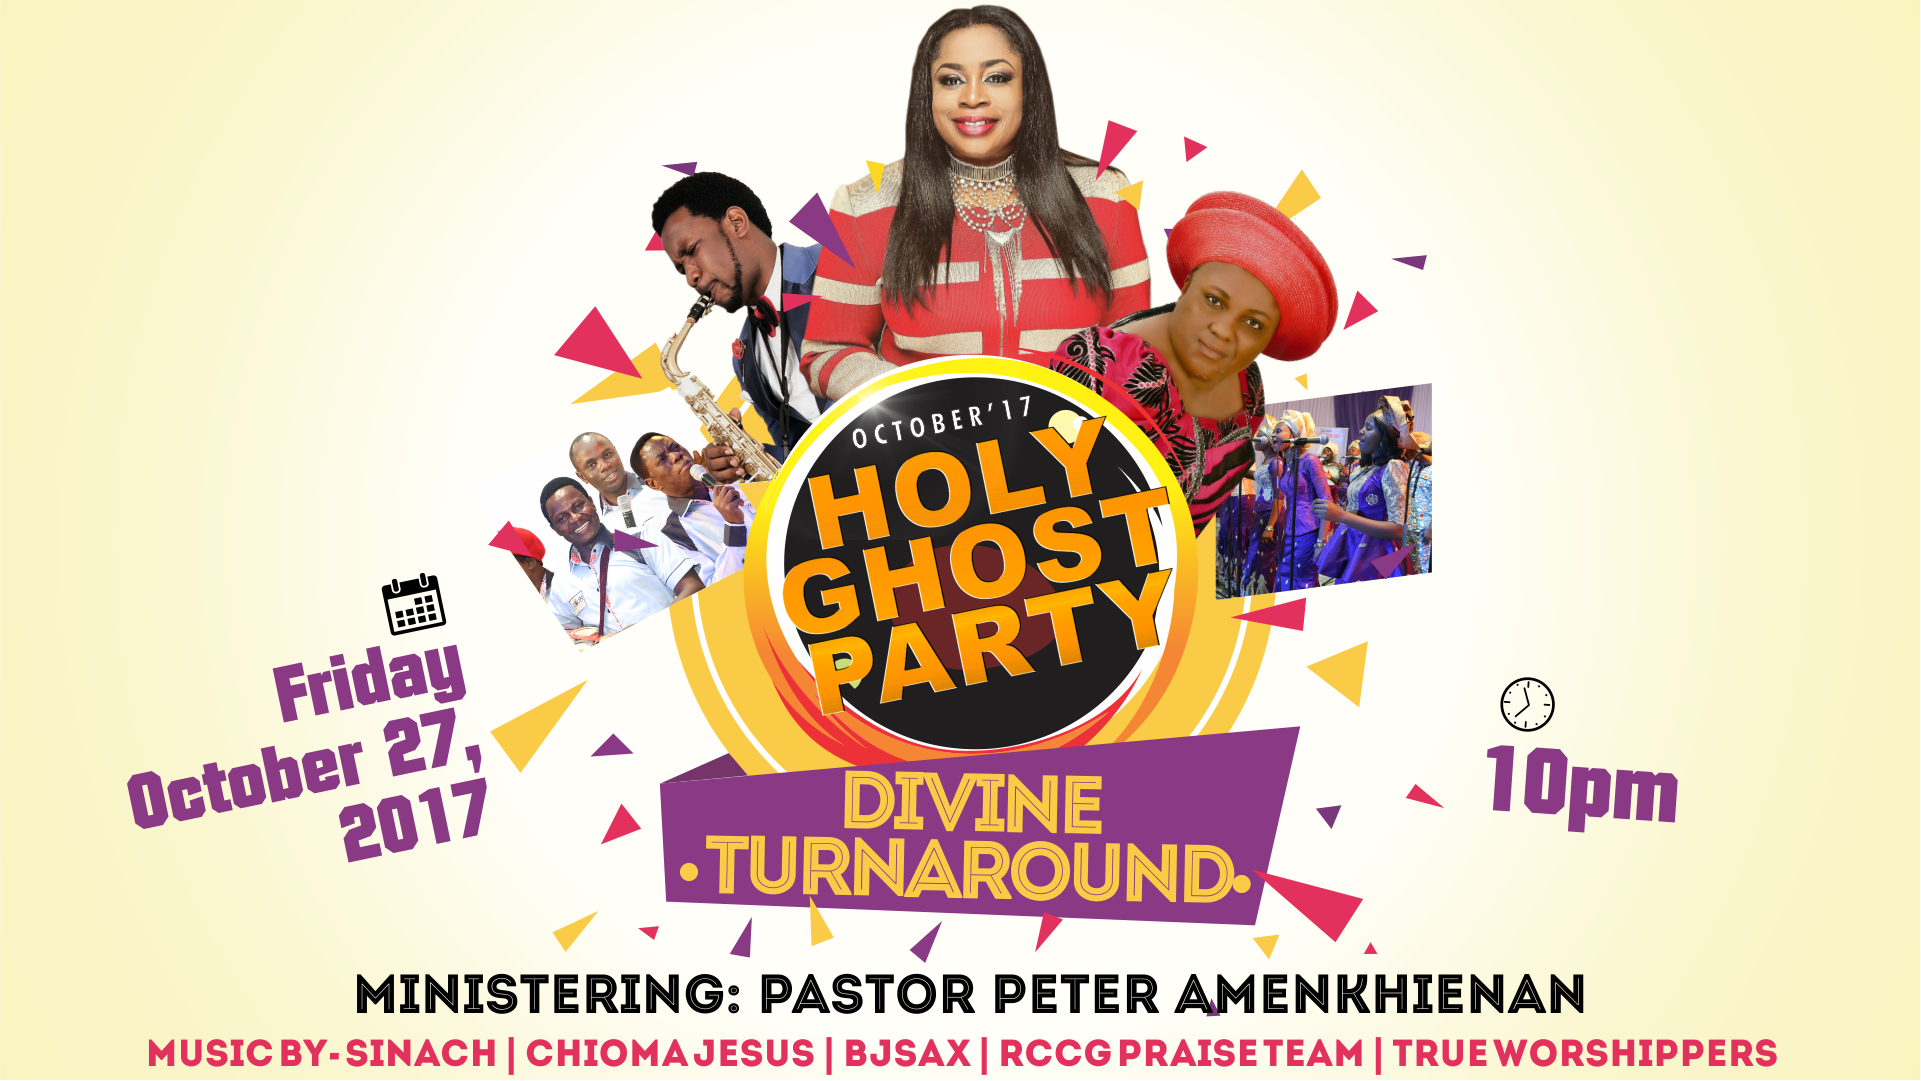 NJW Advert: SINACH HEADLINES RCCG TOD LP 46 HOLY GHOST PARTY @todhouseoffavor | @Proudly_Gospel OCTOBER EDITION